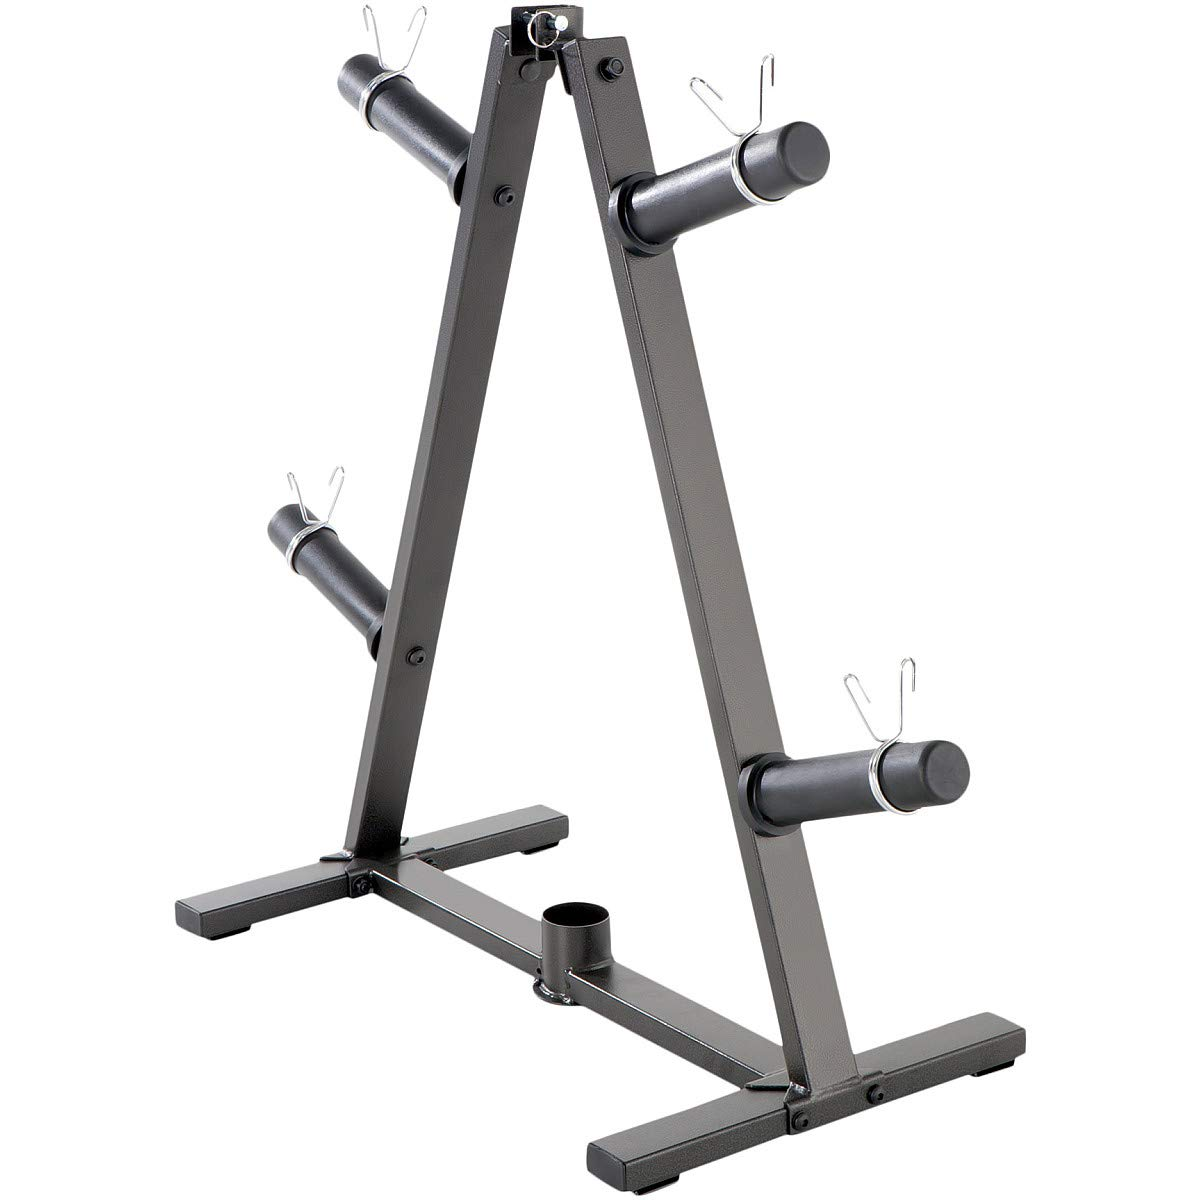 Marcy A-Frame Olympic Weight Plate Tree & Vertical bar Holder Organizer Storage Rack for 2-Inch Free Weights PT-5740